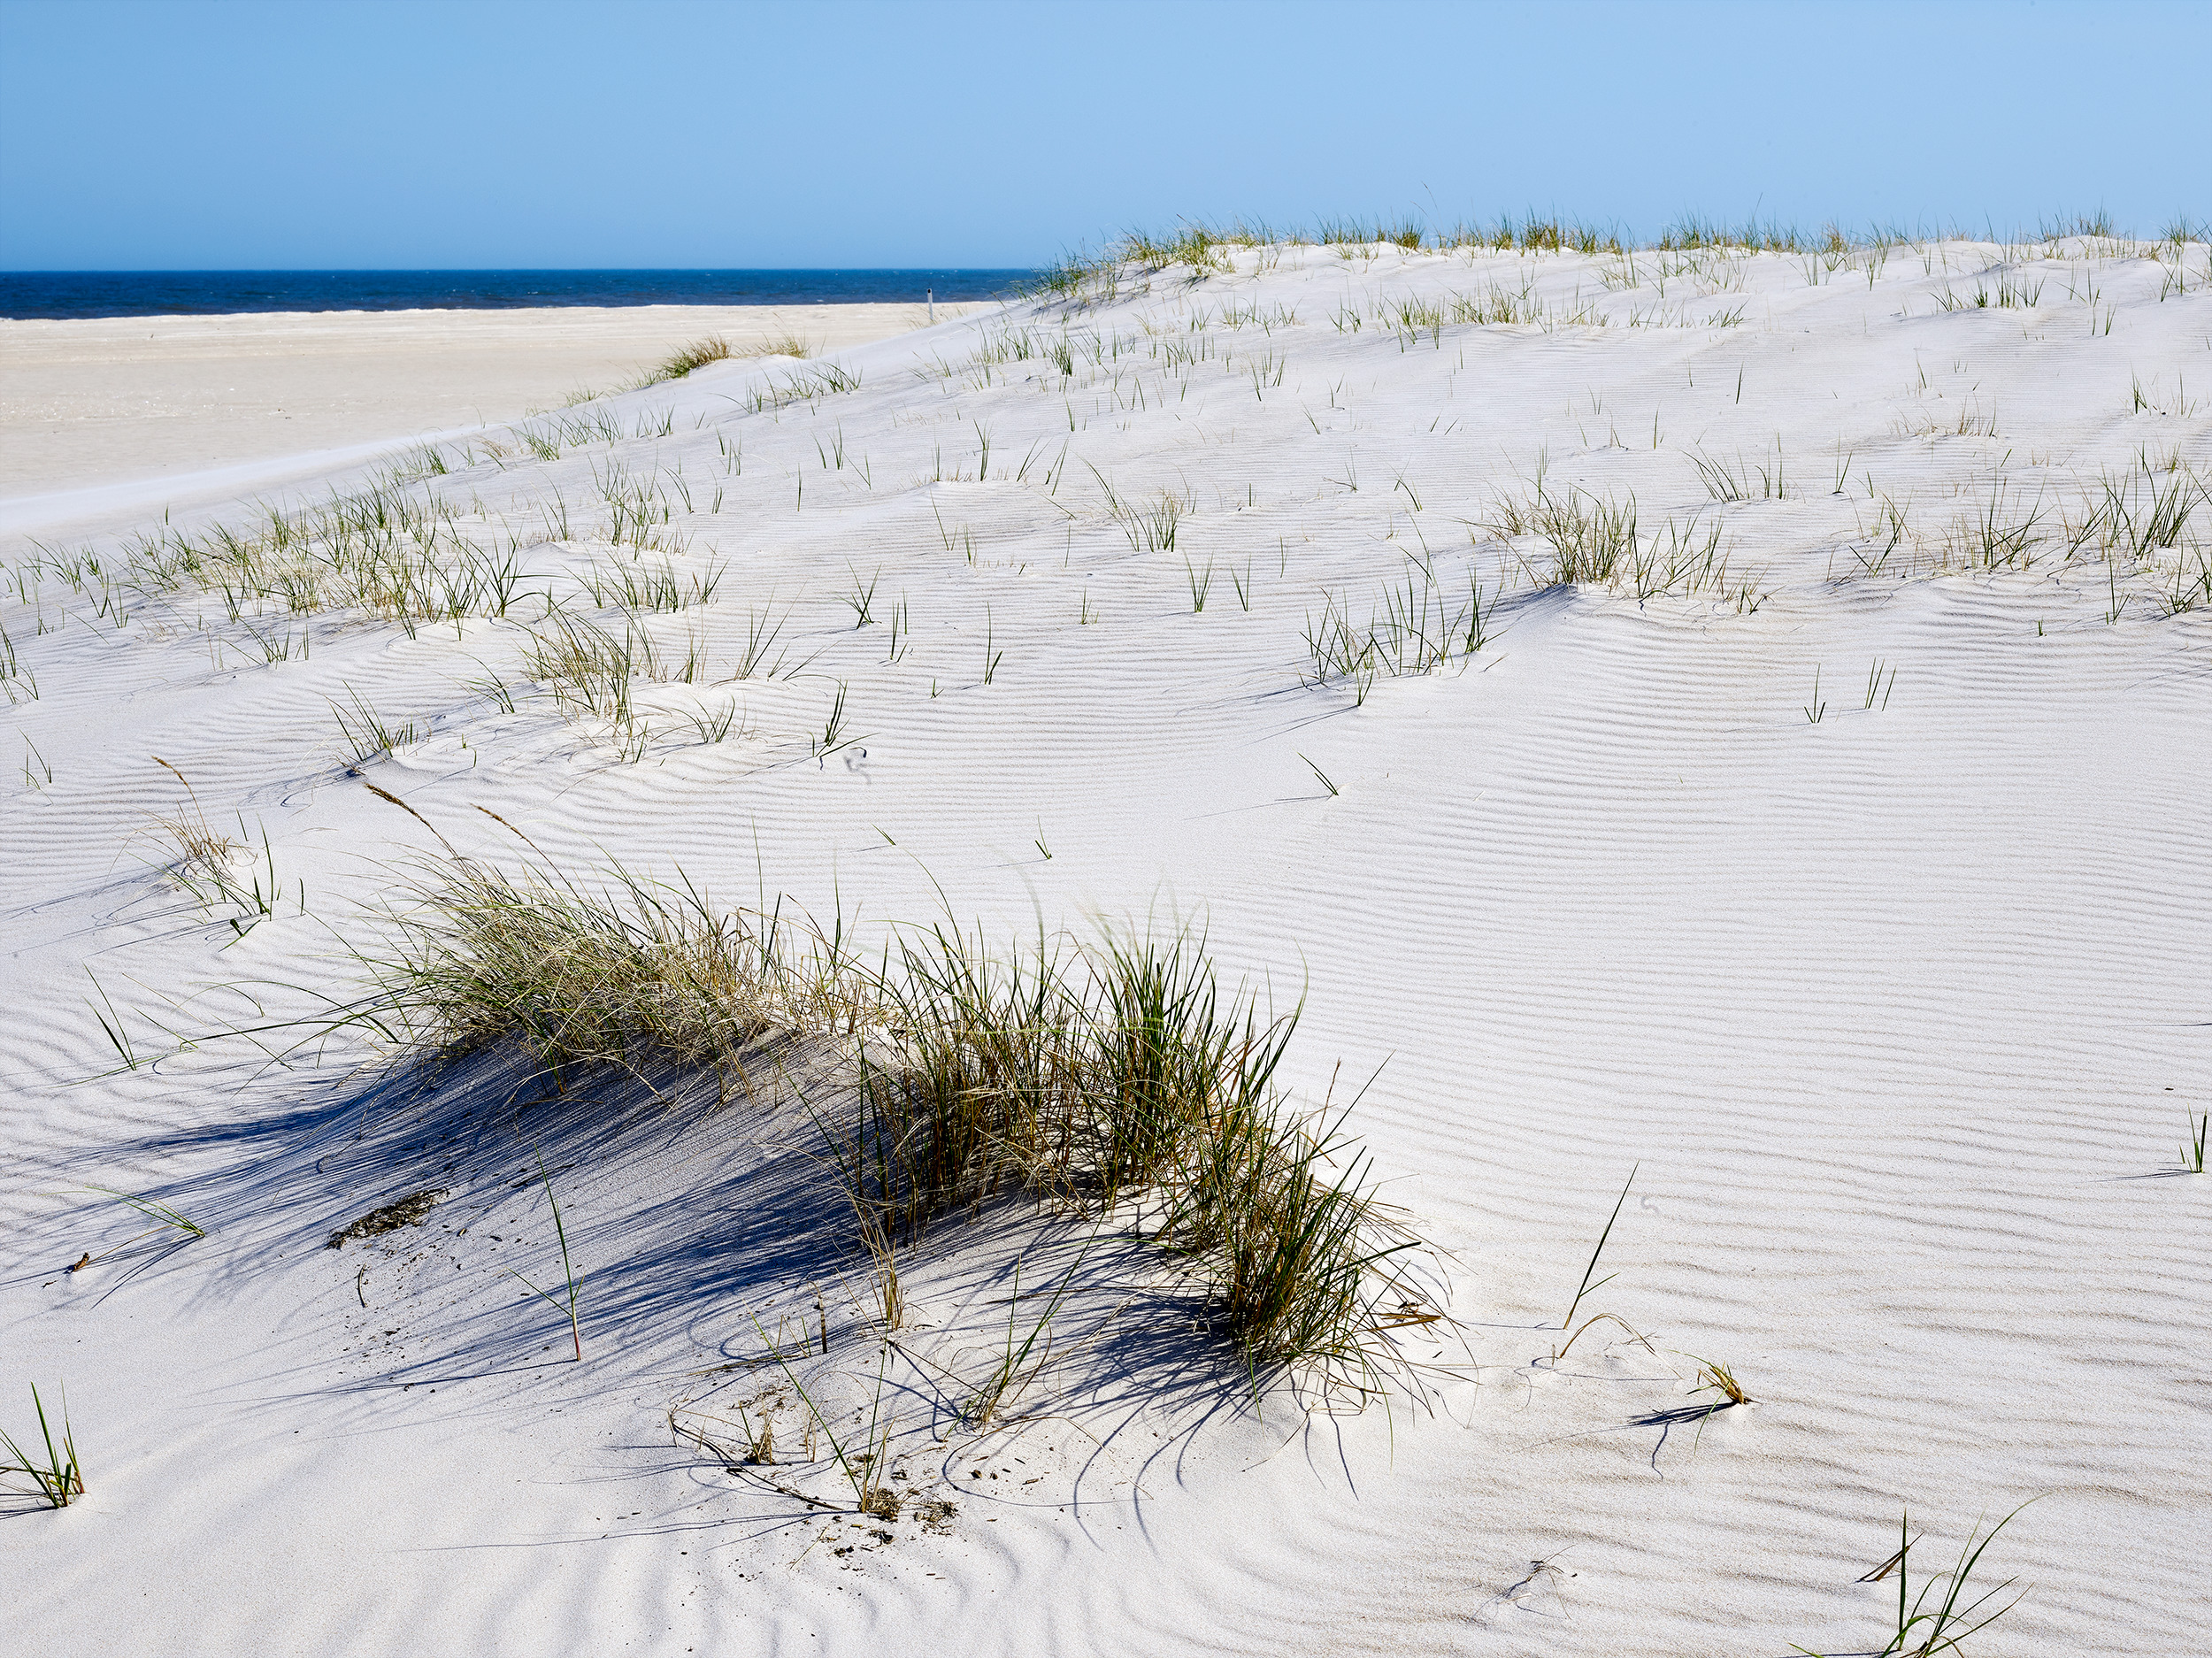 Dune with Sea, Maryland District (2018)